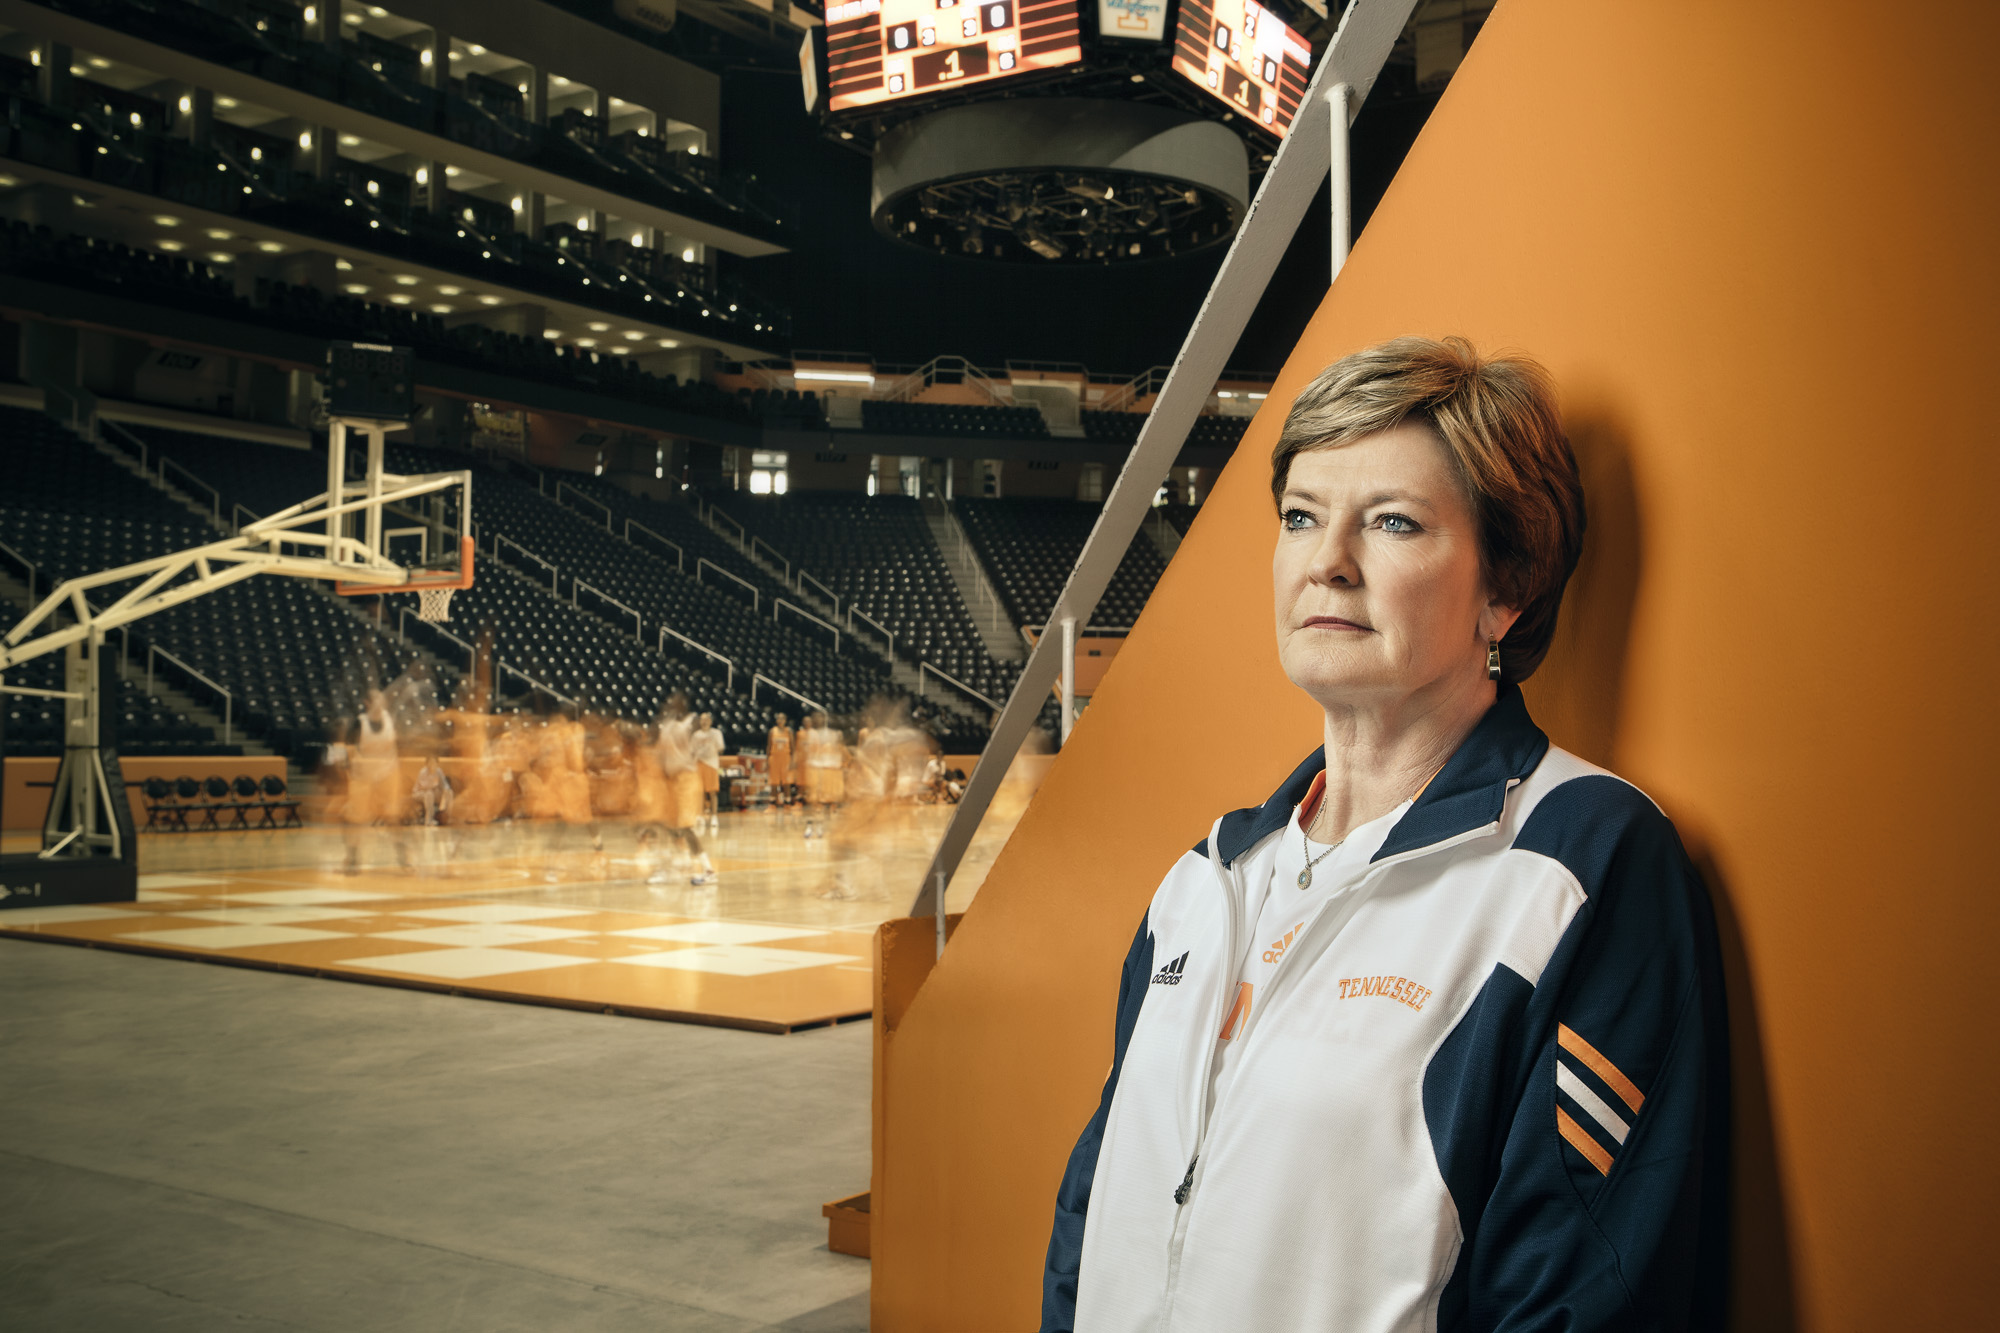 cc2011062 - Coach Pat Summitt for AARP the magazine